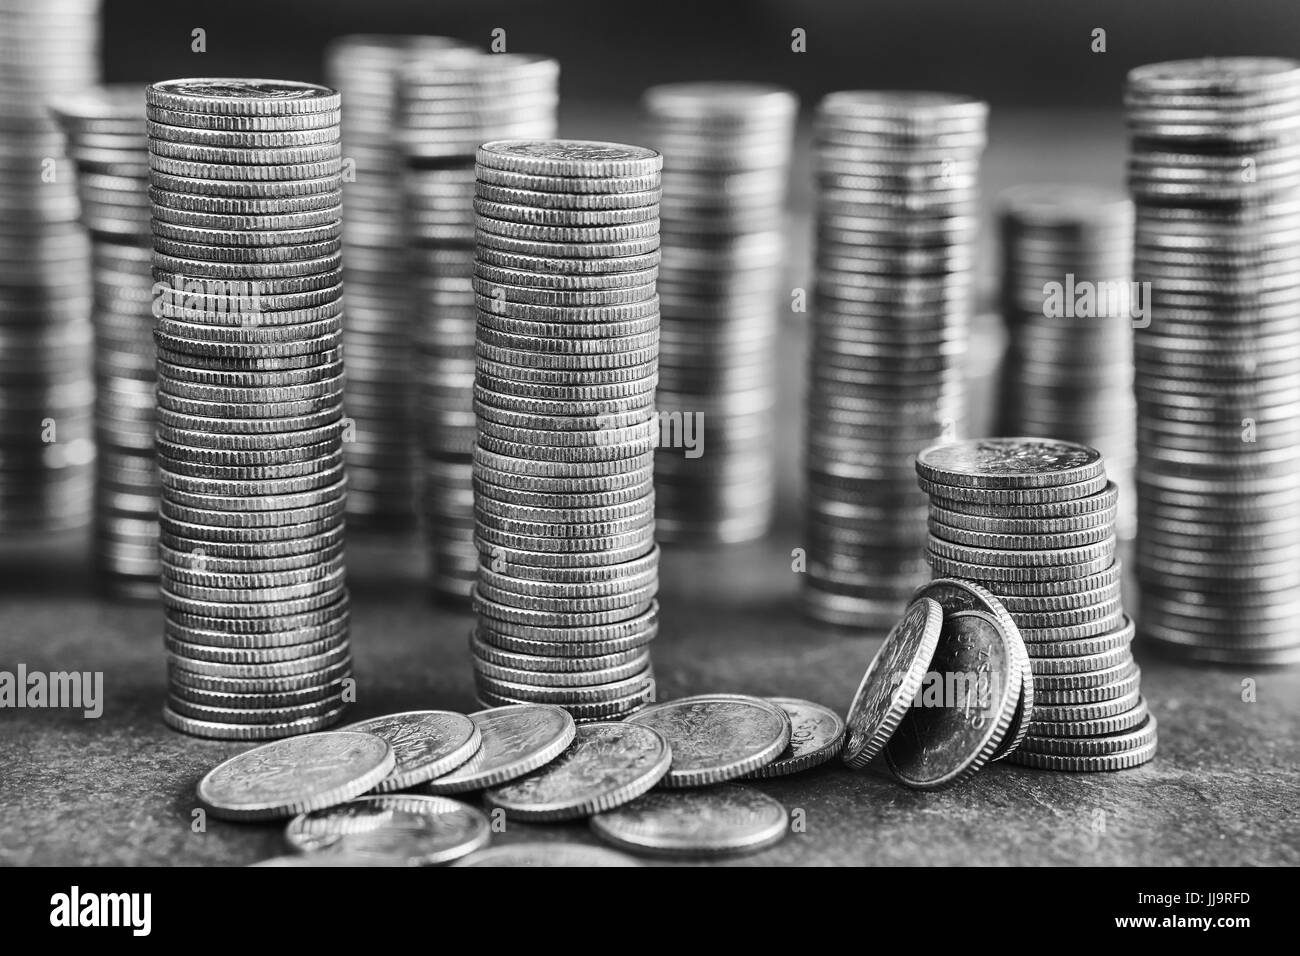 Black and white picture of coins stacks, shallow depth of field. - Stock Image